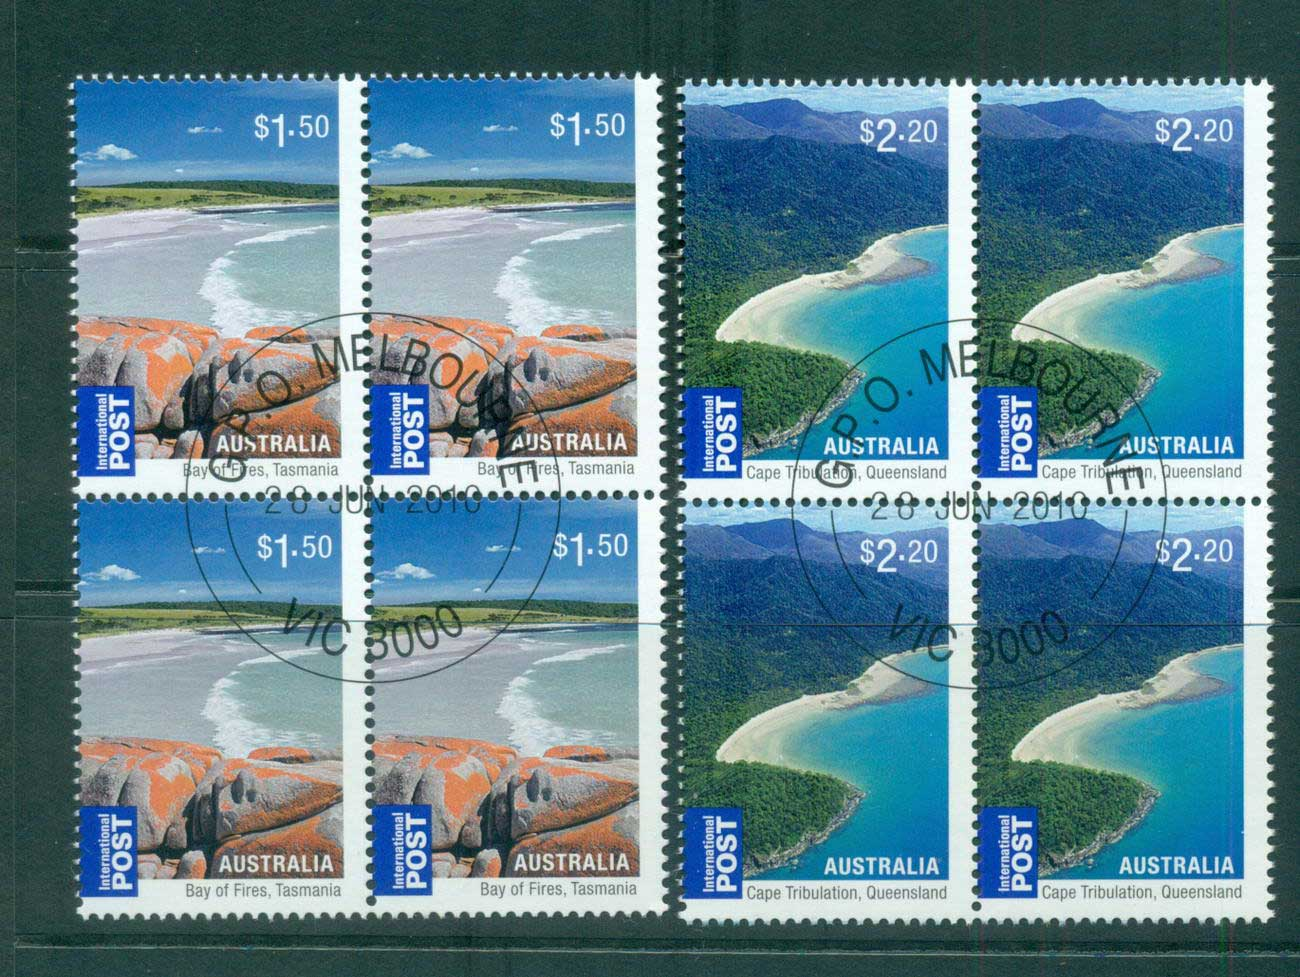 Australia 2010 Beaches Internationals $1.50, $2.20 Blocks 4 CTO, lot54221